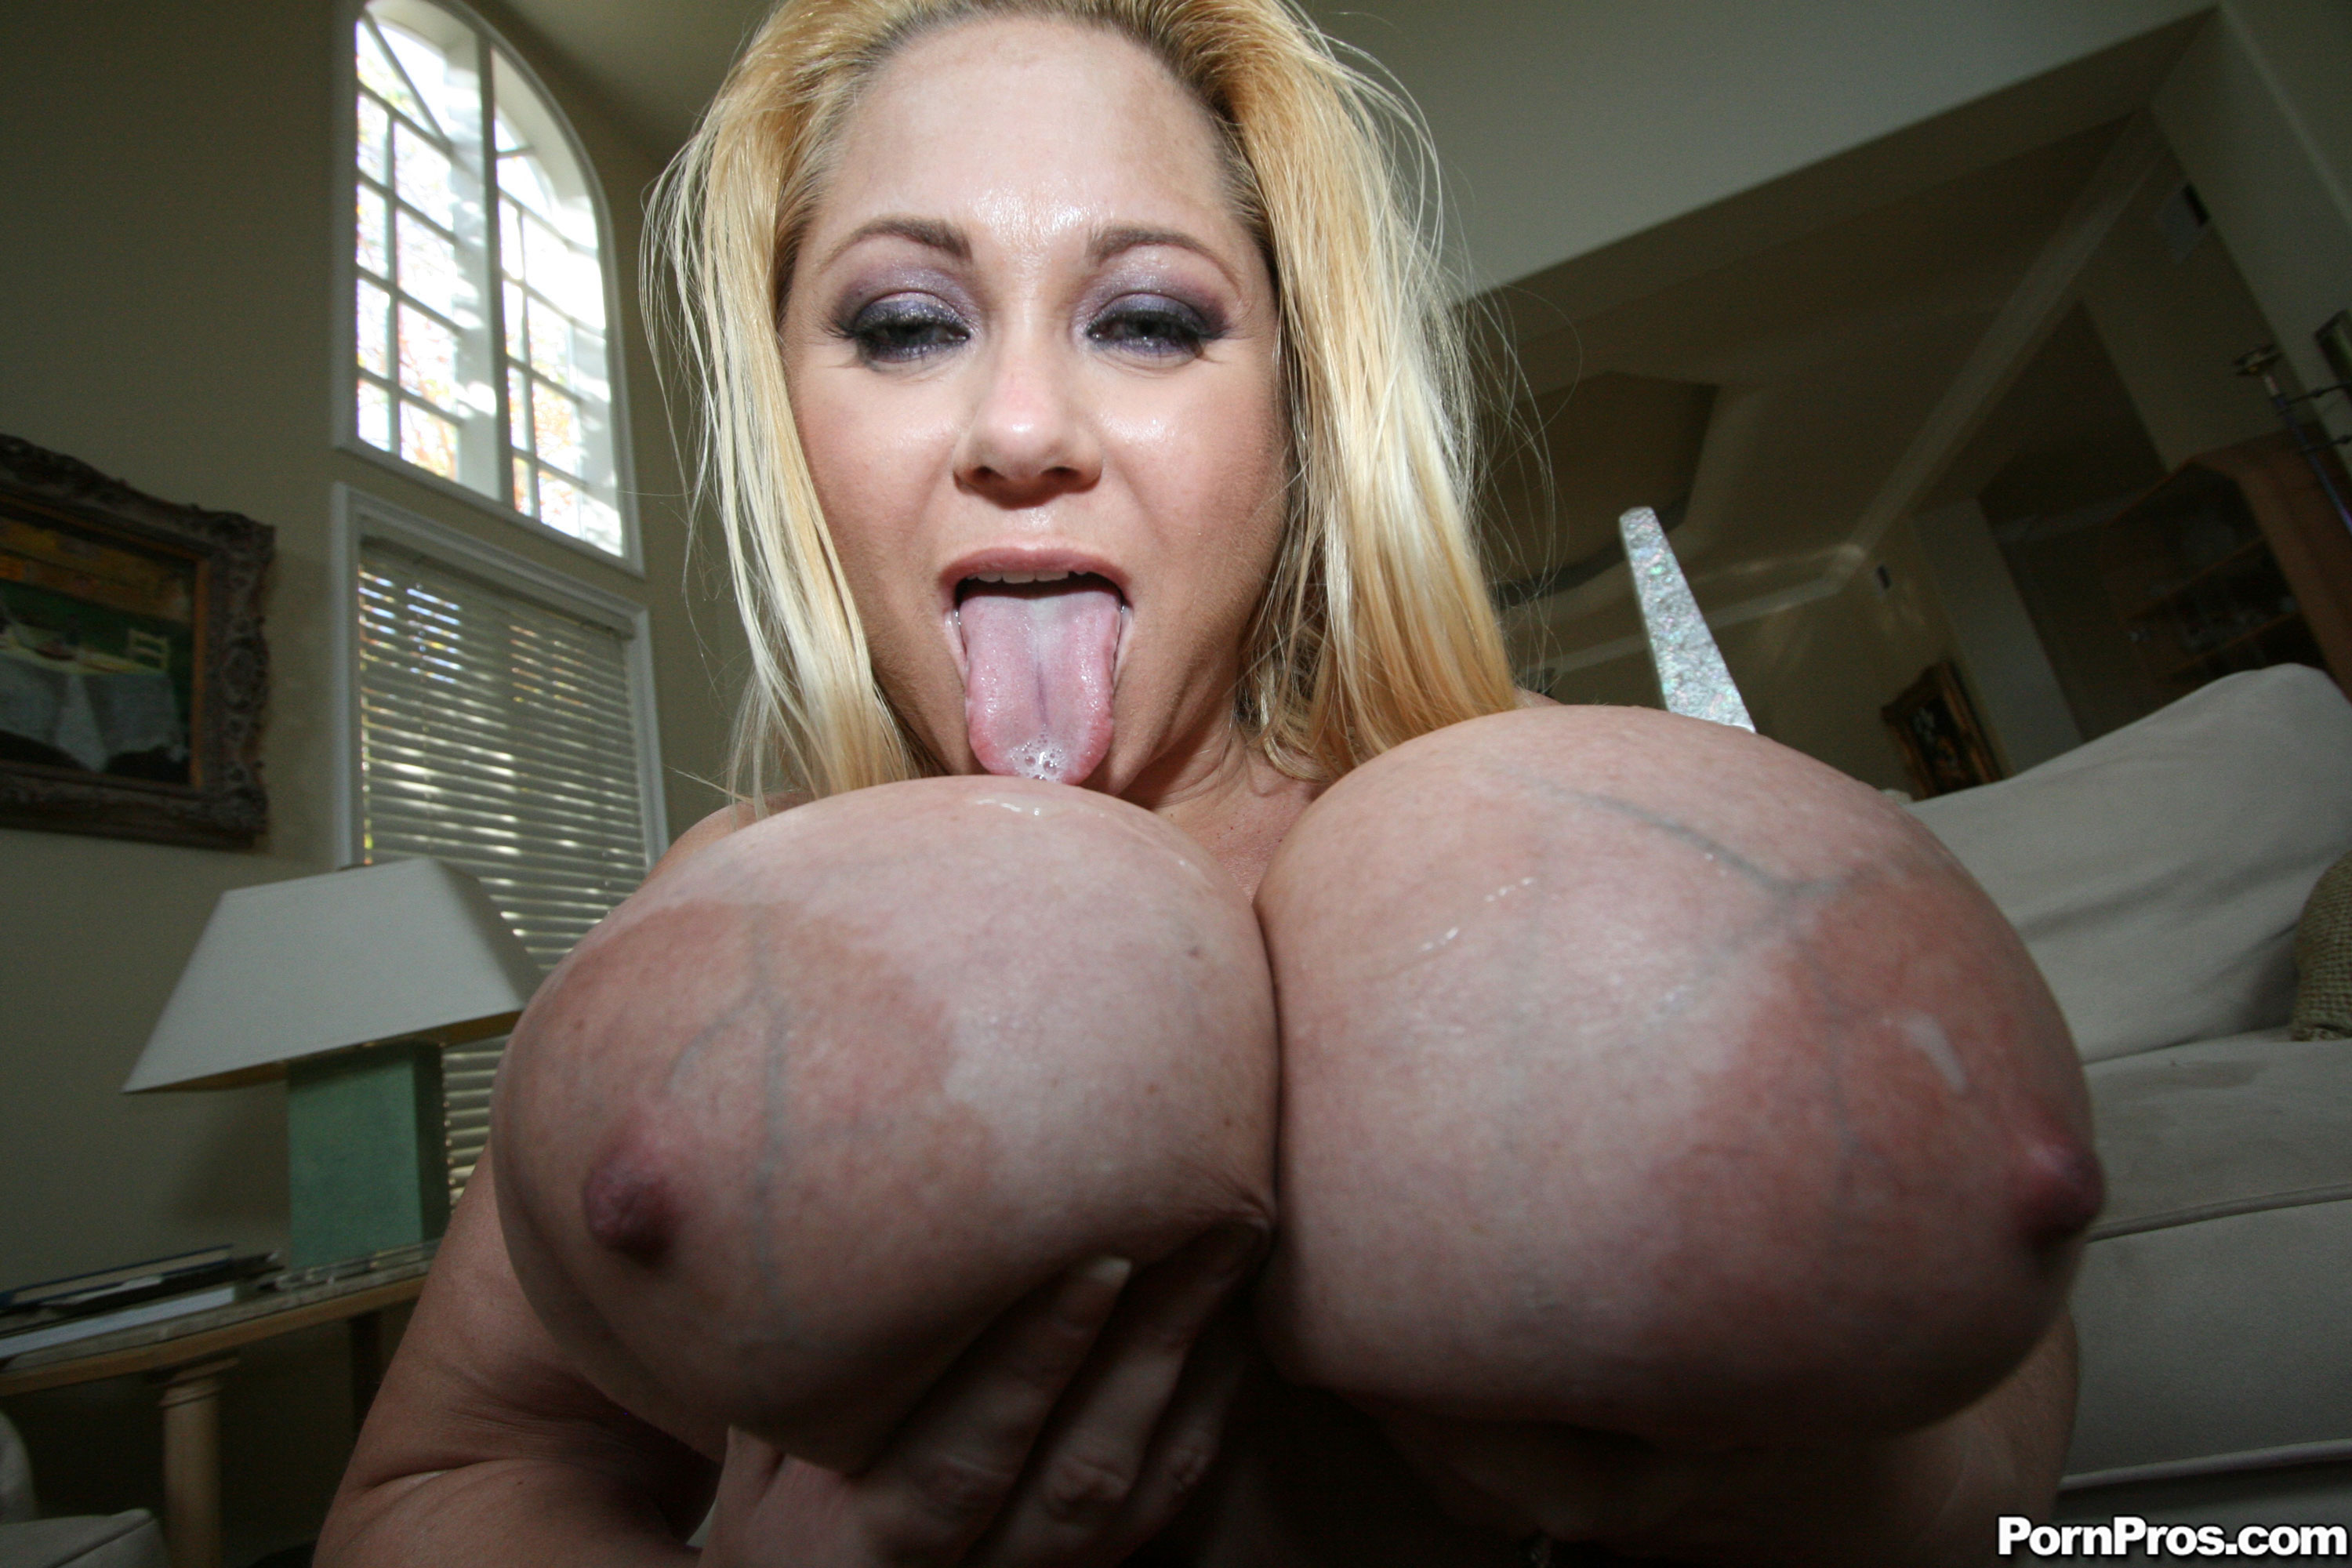 The biggest slut ever